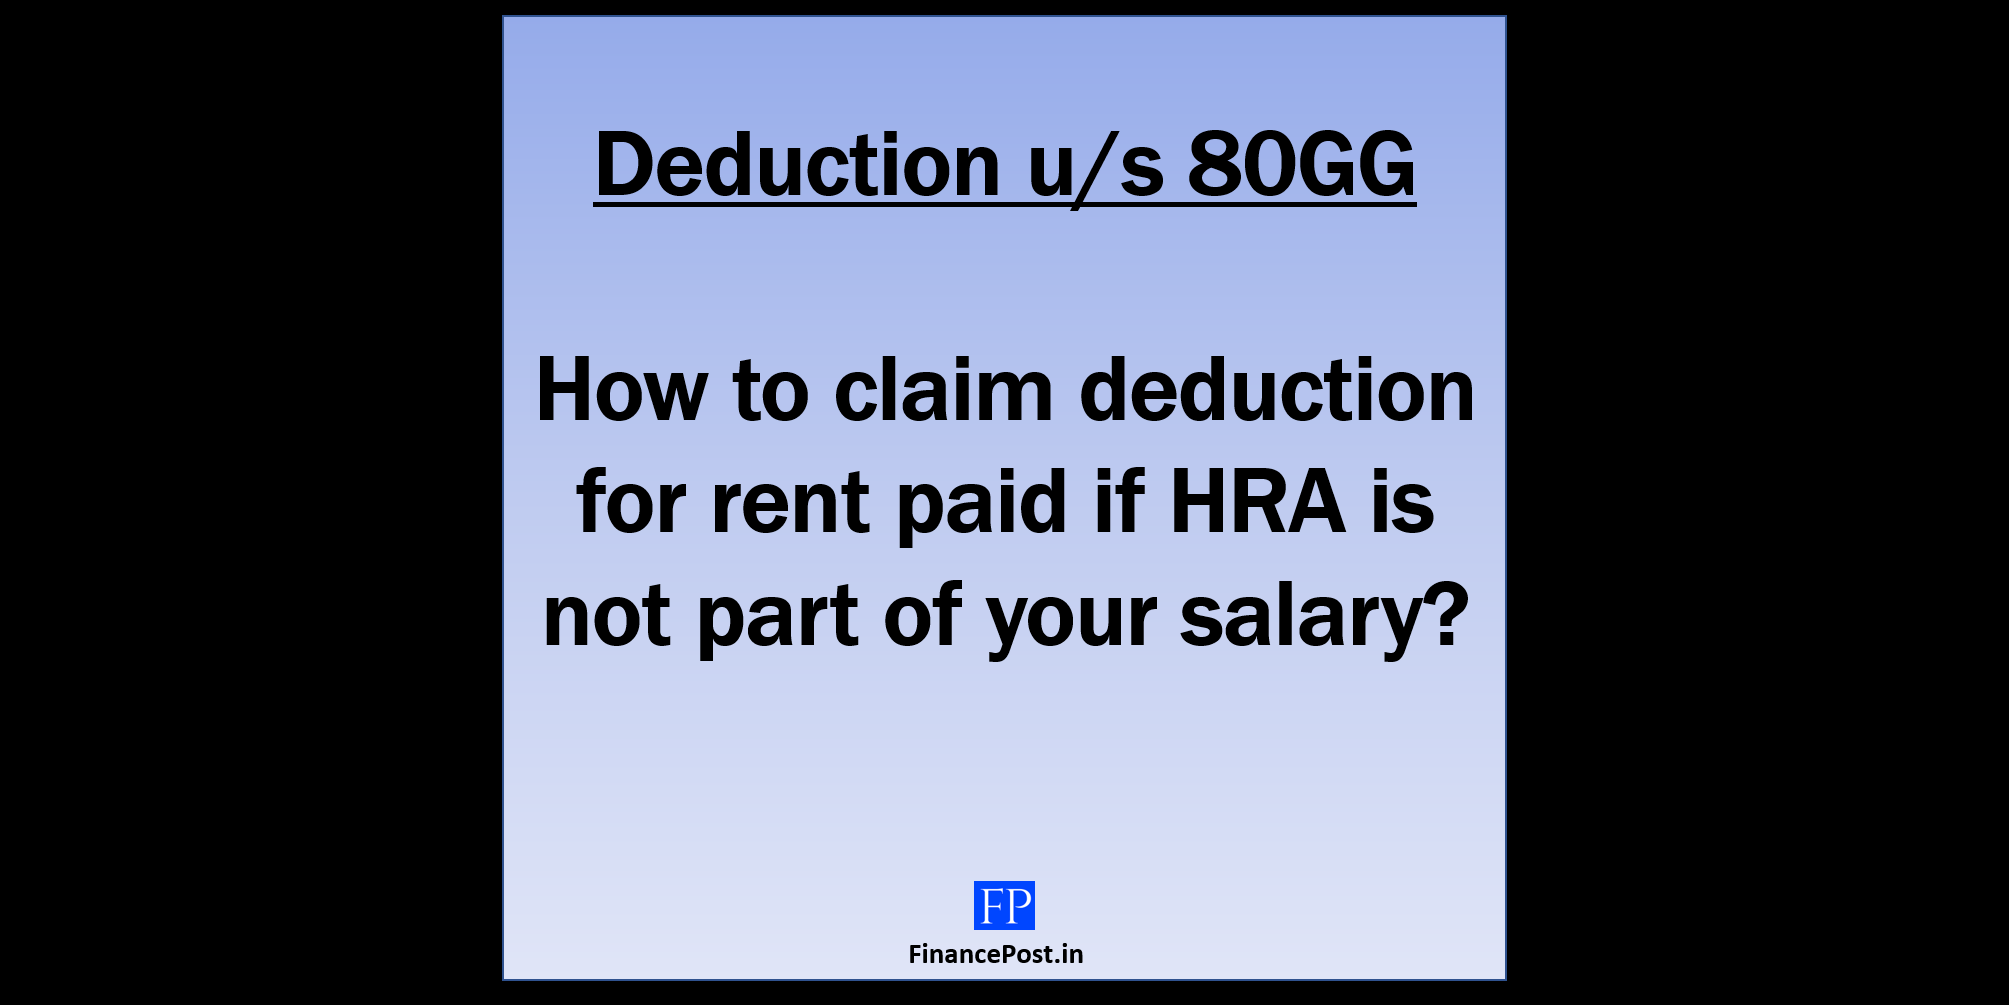 how to claim deduction for rent paid if HRA is not part of your salary